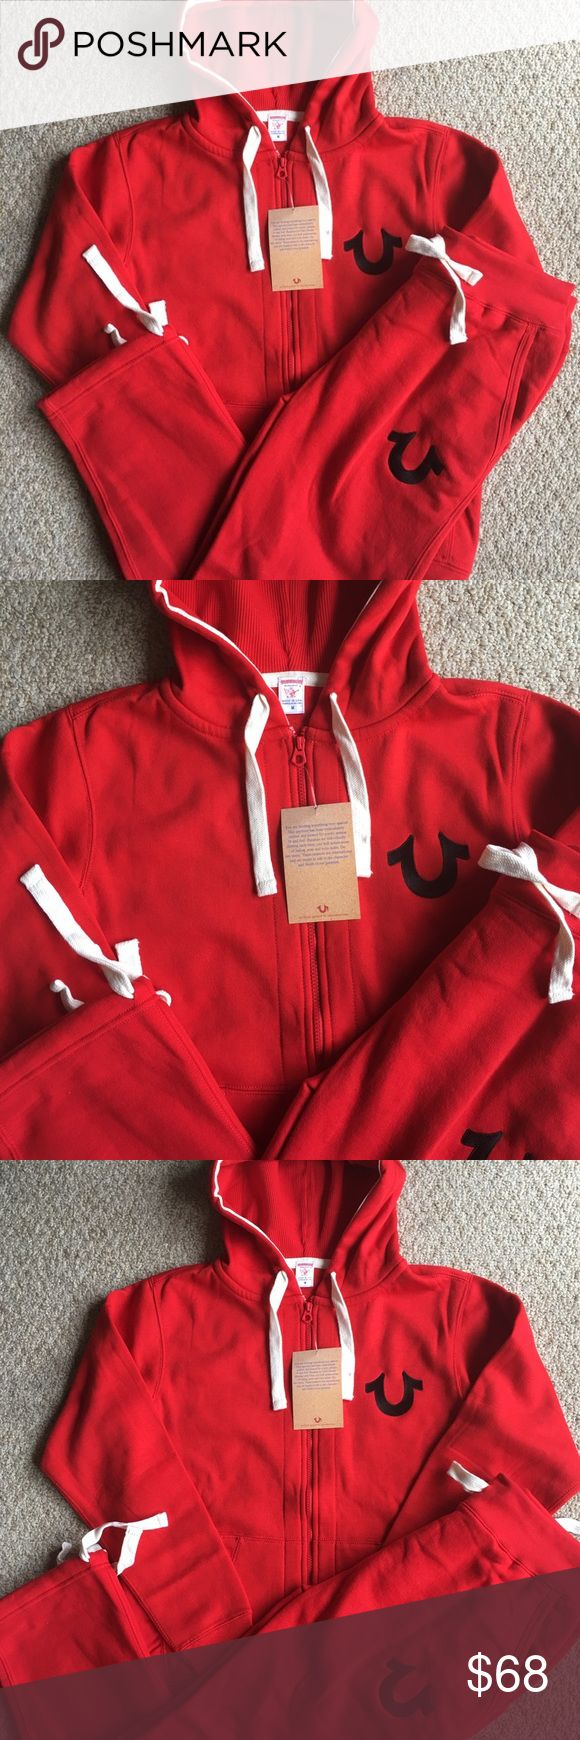 New Men's True Religion Zip Hoodie Sweatpants Set Brand new with tags.  Red zippered Hoodie with drawstring Sweatpants. True Religion Shirts Sweatshirts & Hoodies